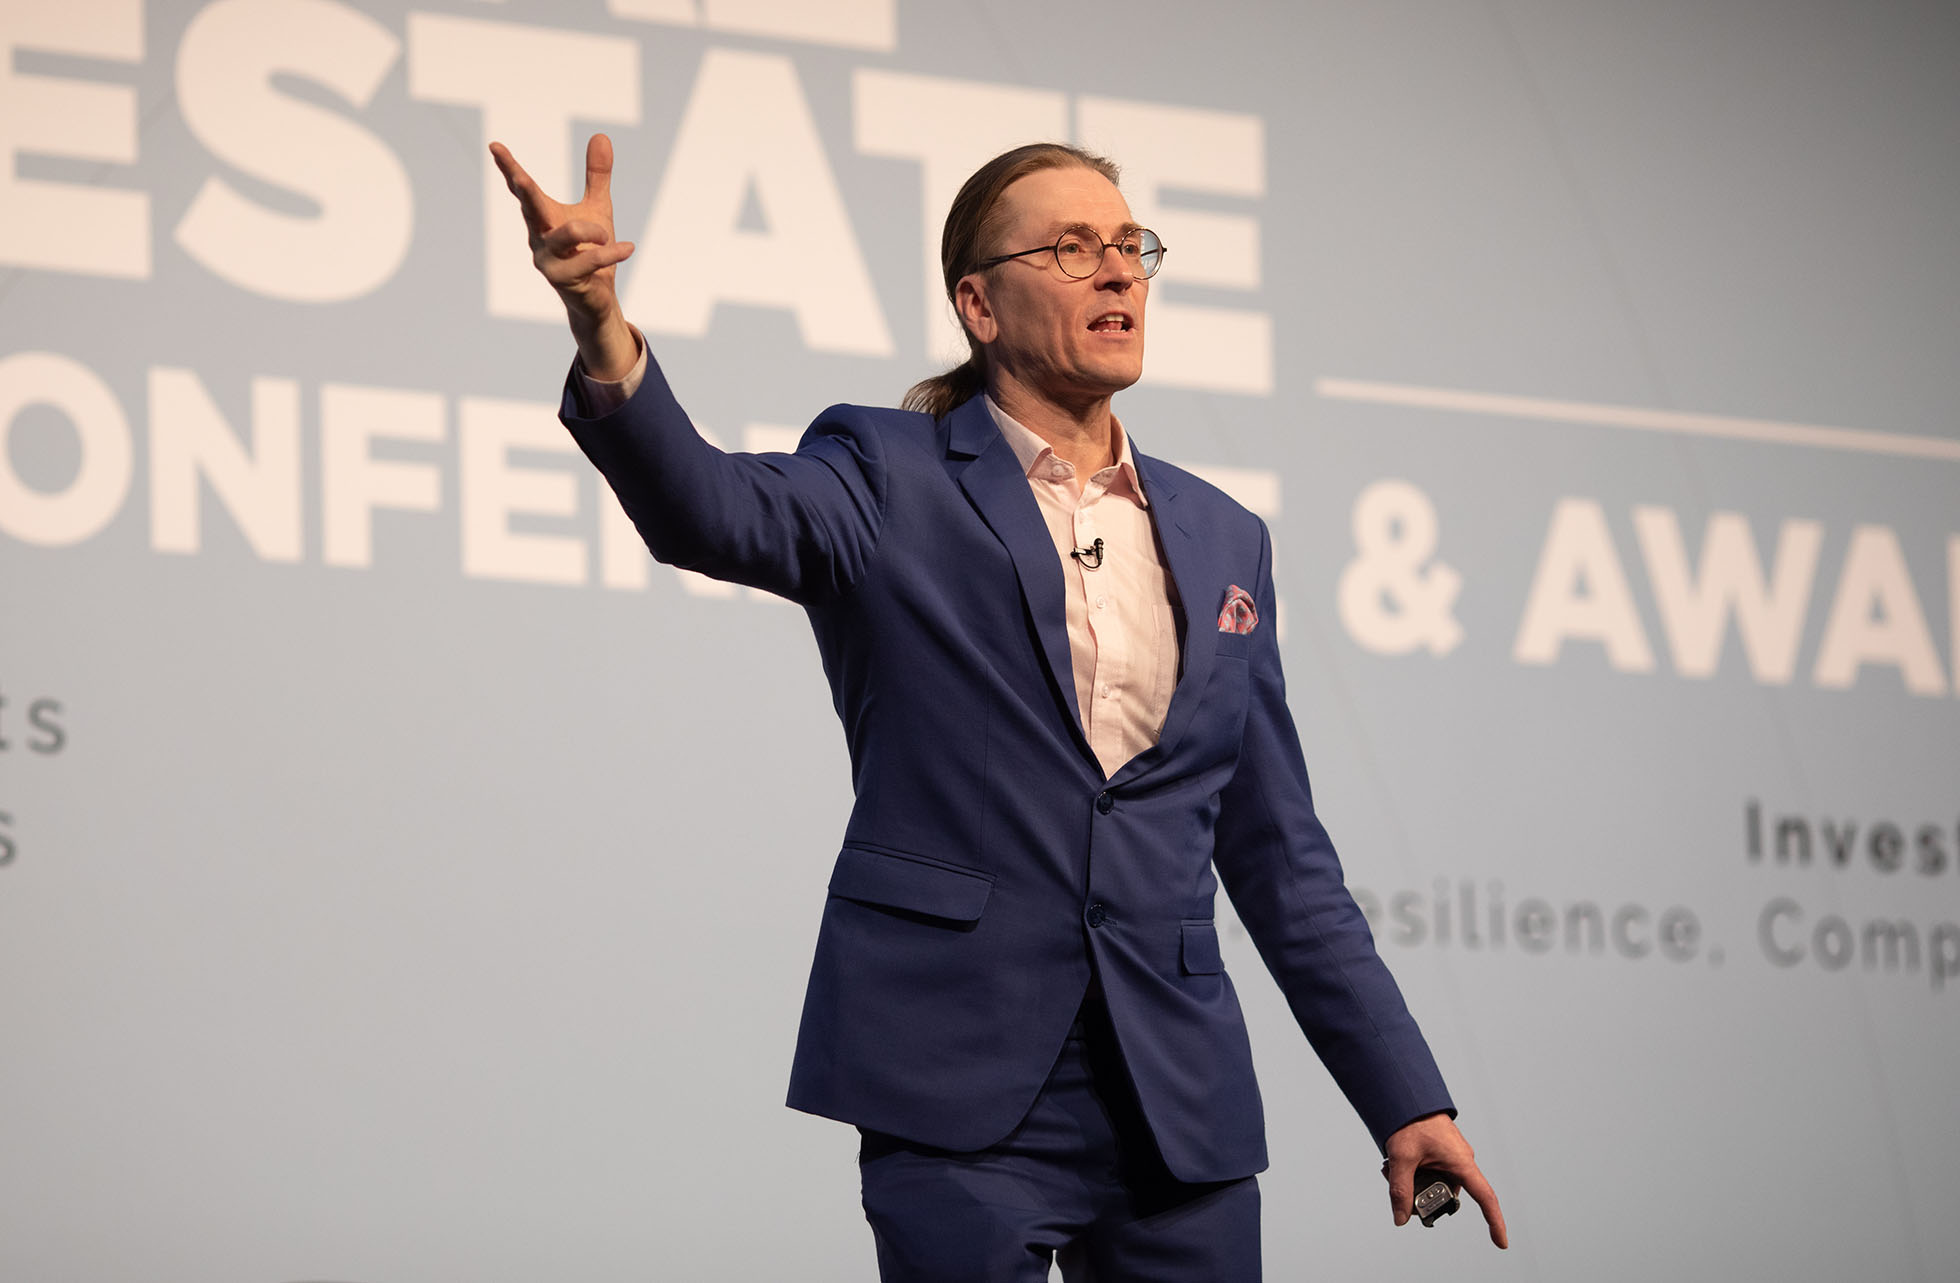 Mikko Hypönnen, IPE Real Estate Global Conference & Awards 2019